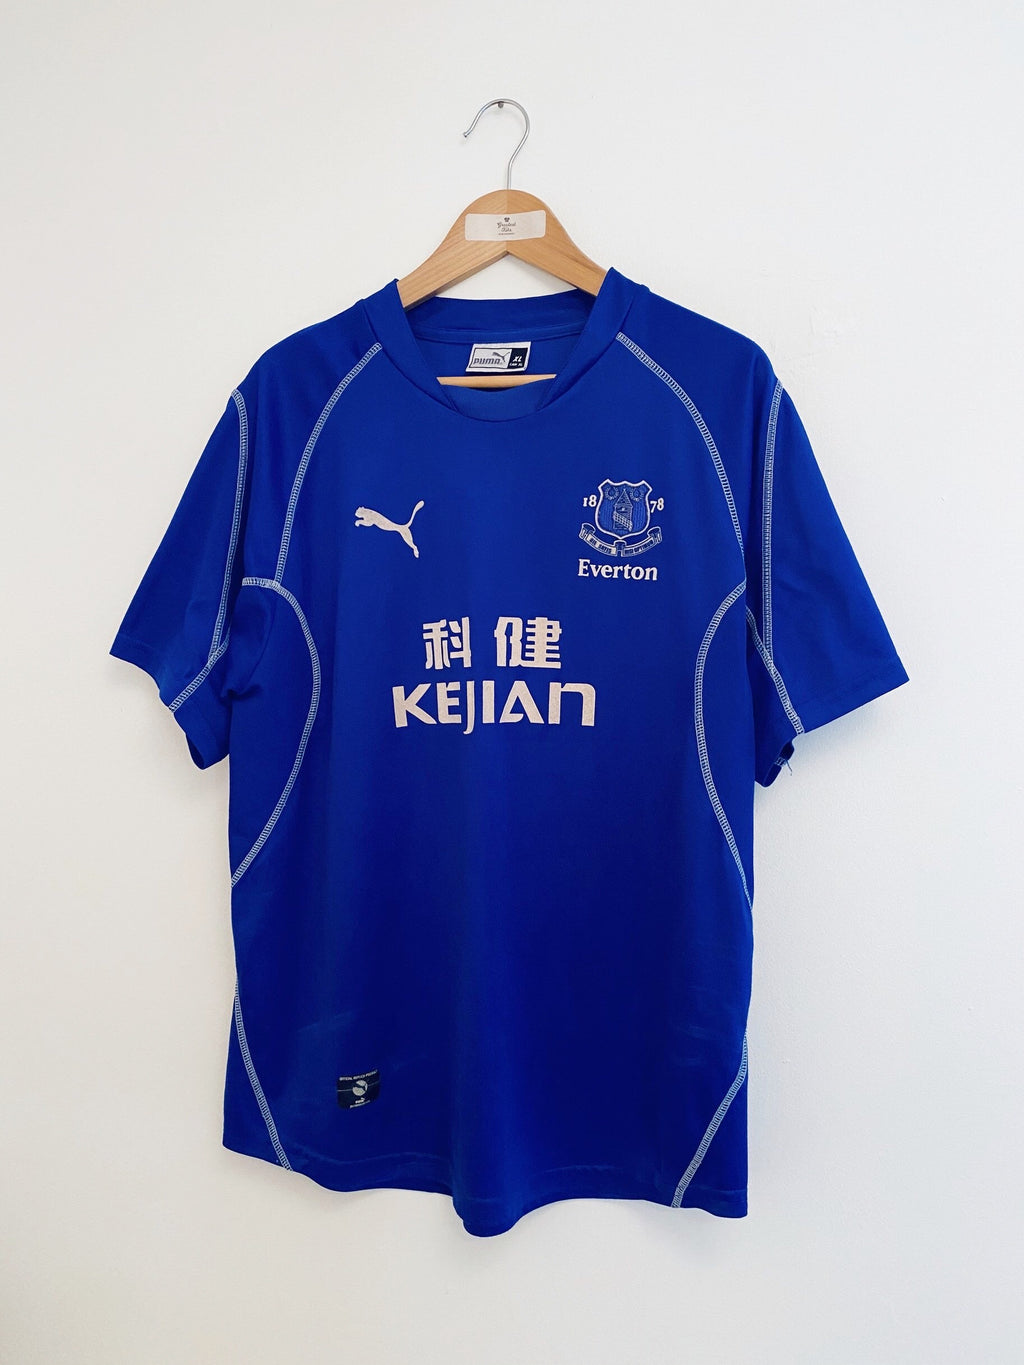 2002/03 Everton Home Shirt (XL) 7.5/10